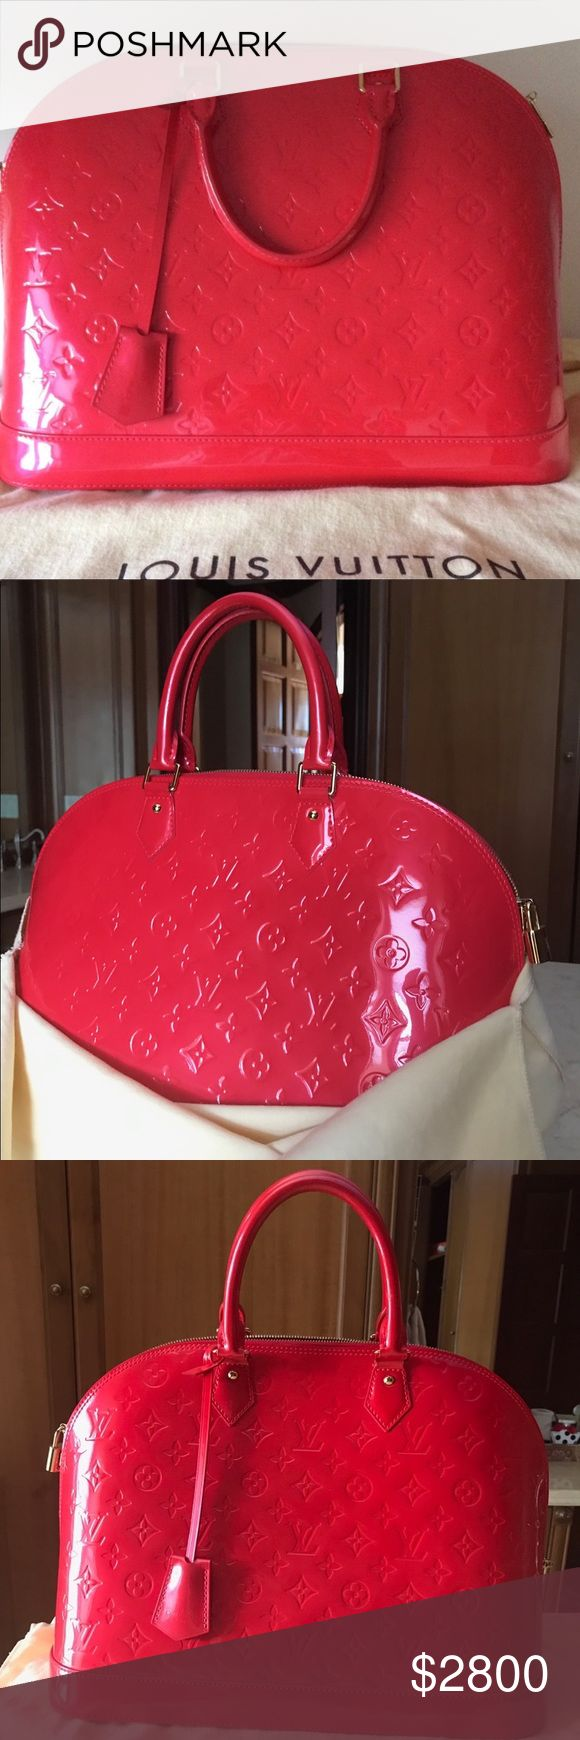 Louis Vuitton Alma Bag MM Rouge Grenadine Louis Vuitton Alma Bag in Rouge Grenadine. New! Never carried . Pristine Condition. Absolutely No Signs of wear. Comes with dust bag and original Receipt which is available upon request. Louis Vuitton Bags Satchels